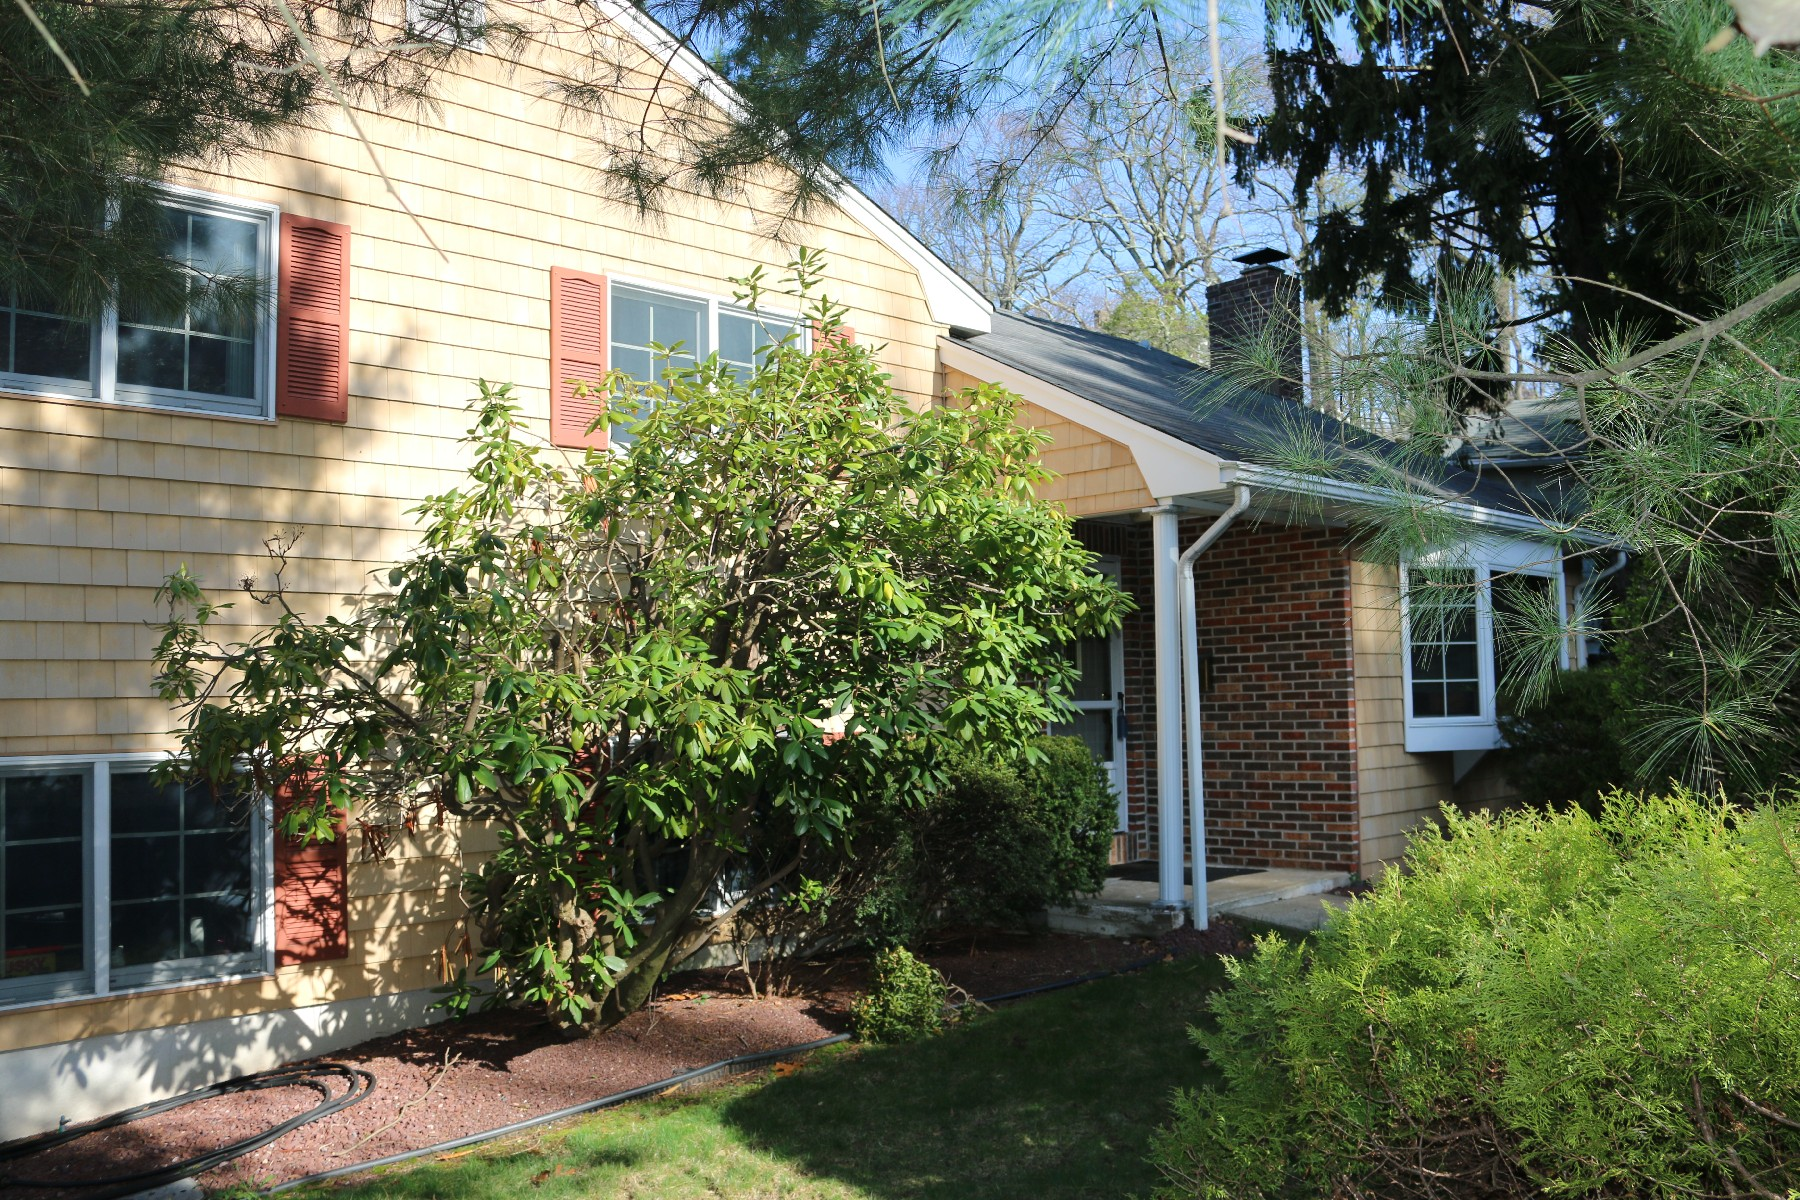 Single Family Homes for Sale at Spacious Split Level 43 Grand Avenue Atlantic Highlands, New Jersey 07716 United States